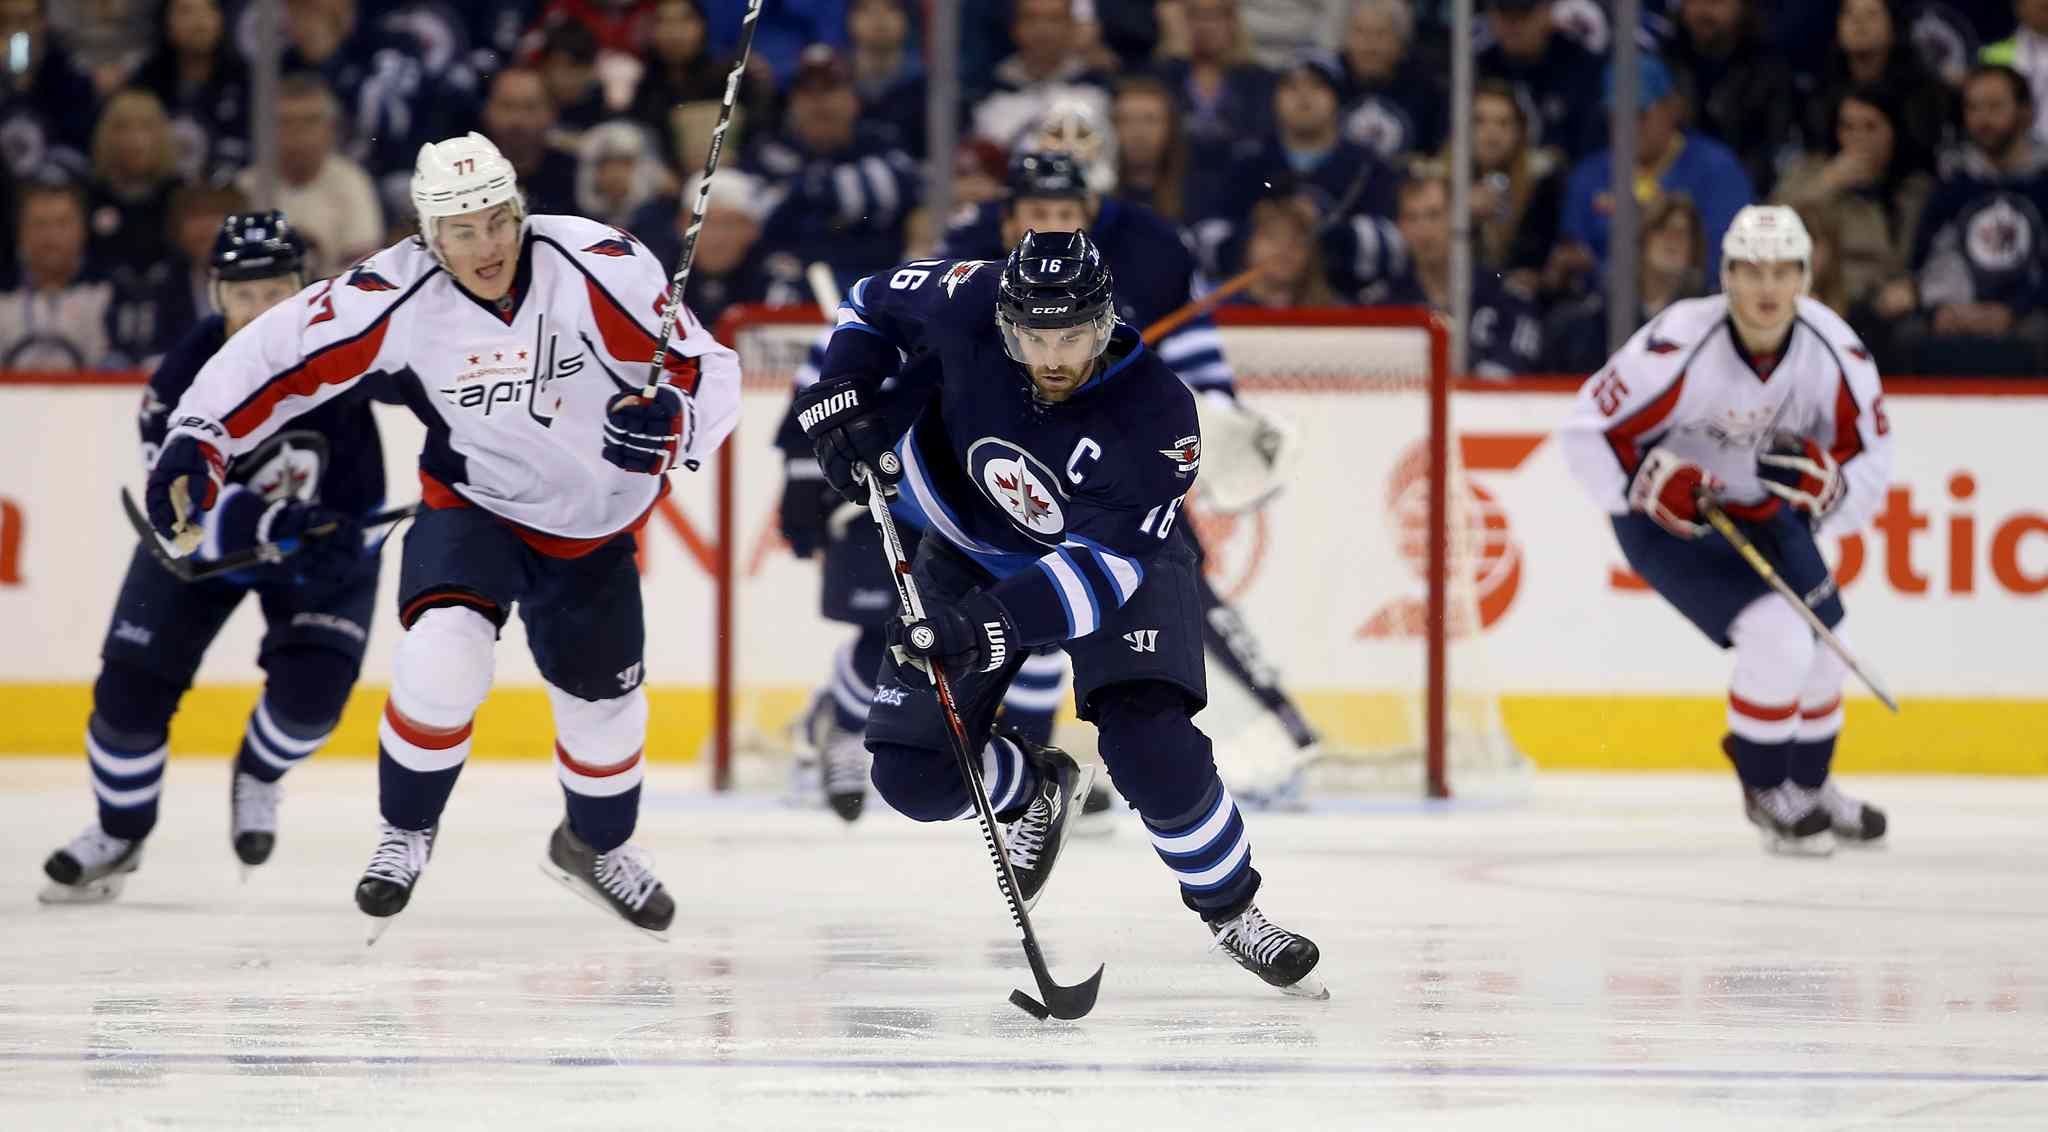 Winnipeg Jets' Andrew Ladd (16) carries the puck up ice against the Washington Capitals. Dec. 5.